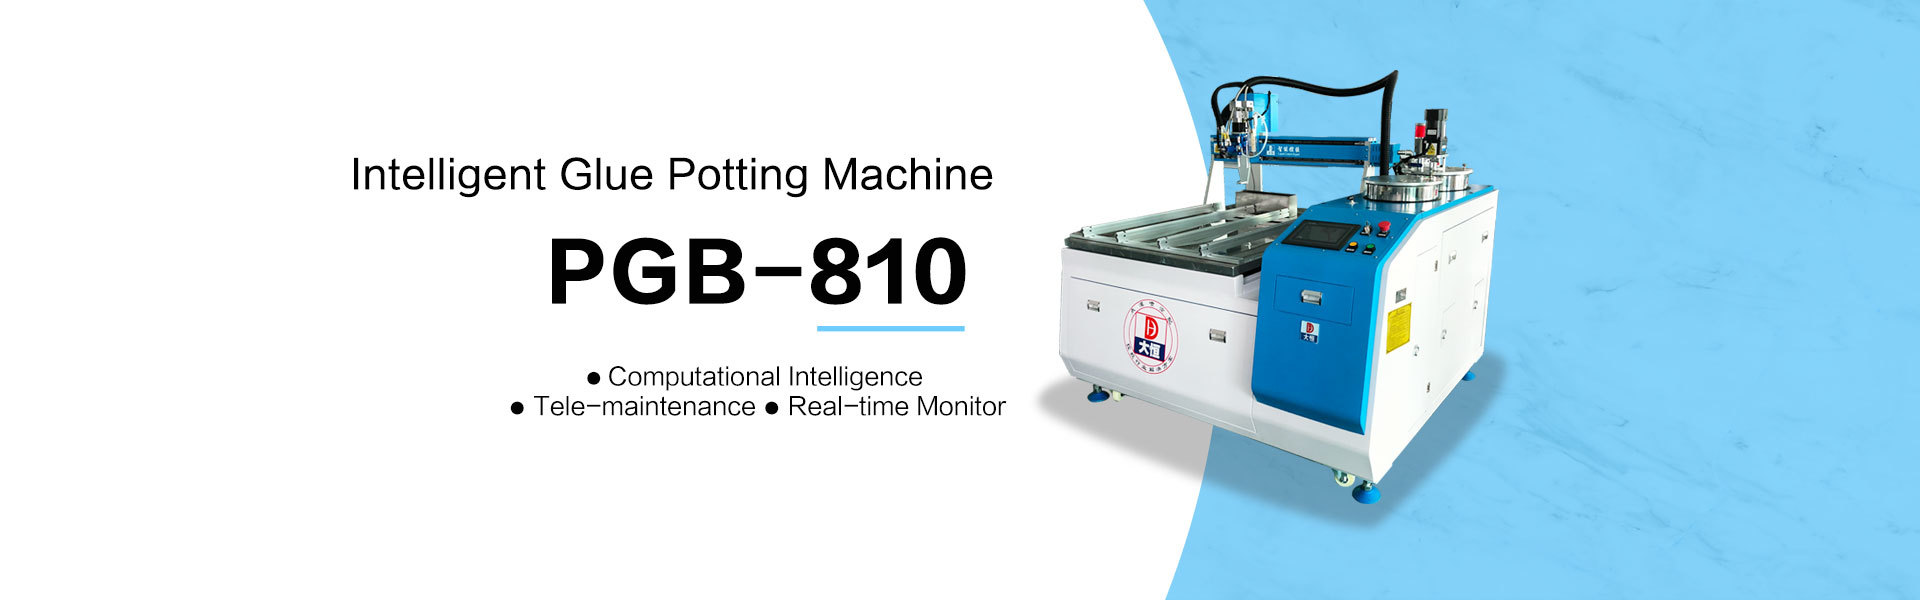 Intelligent glue potting machine